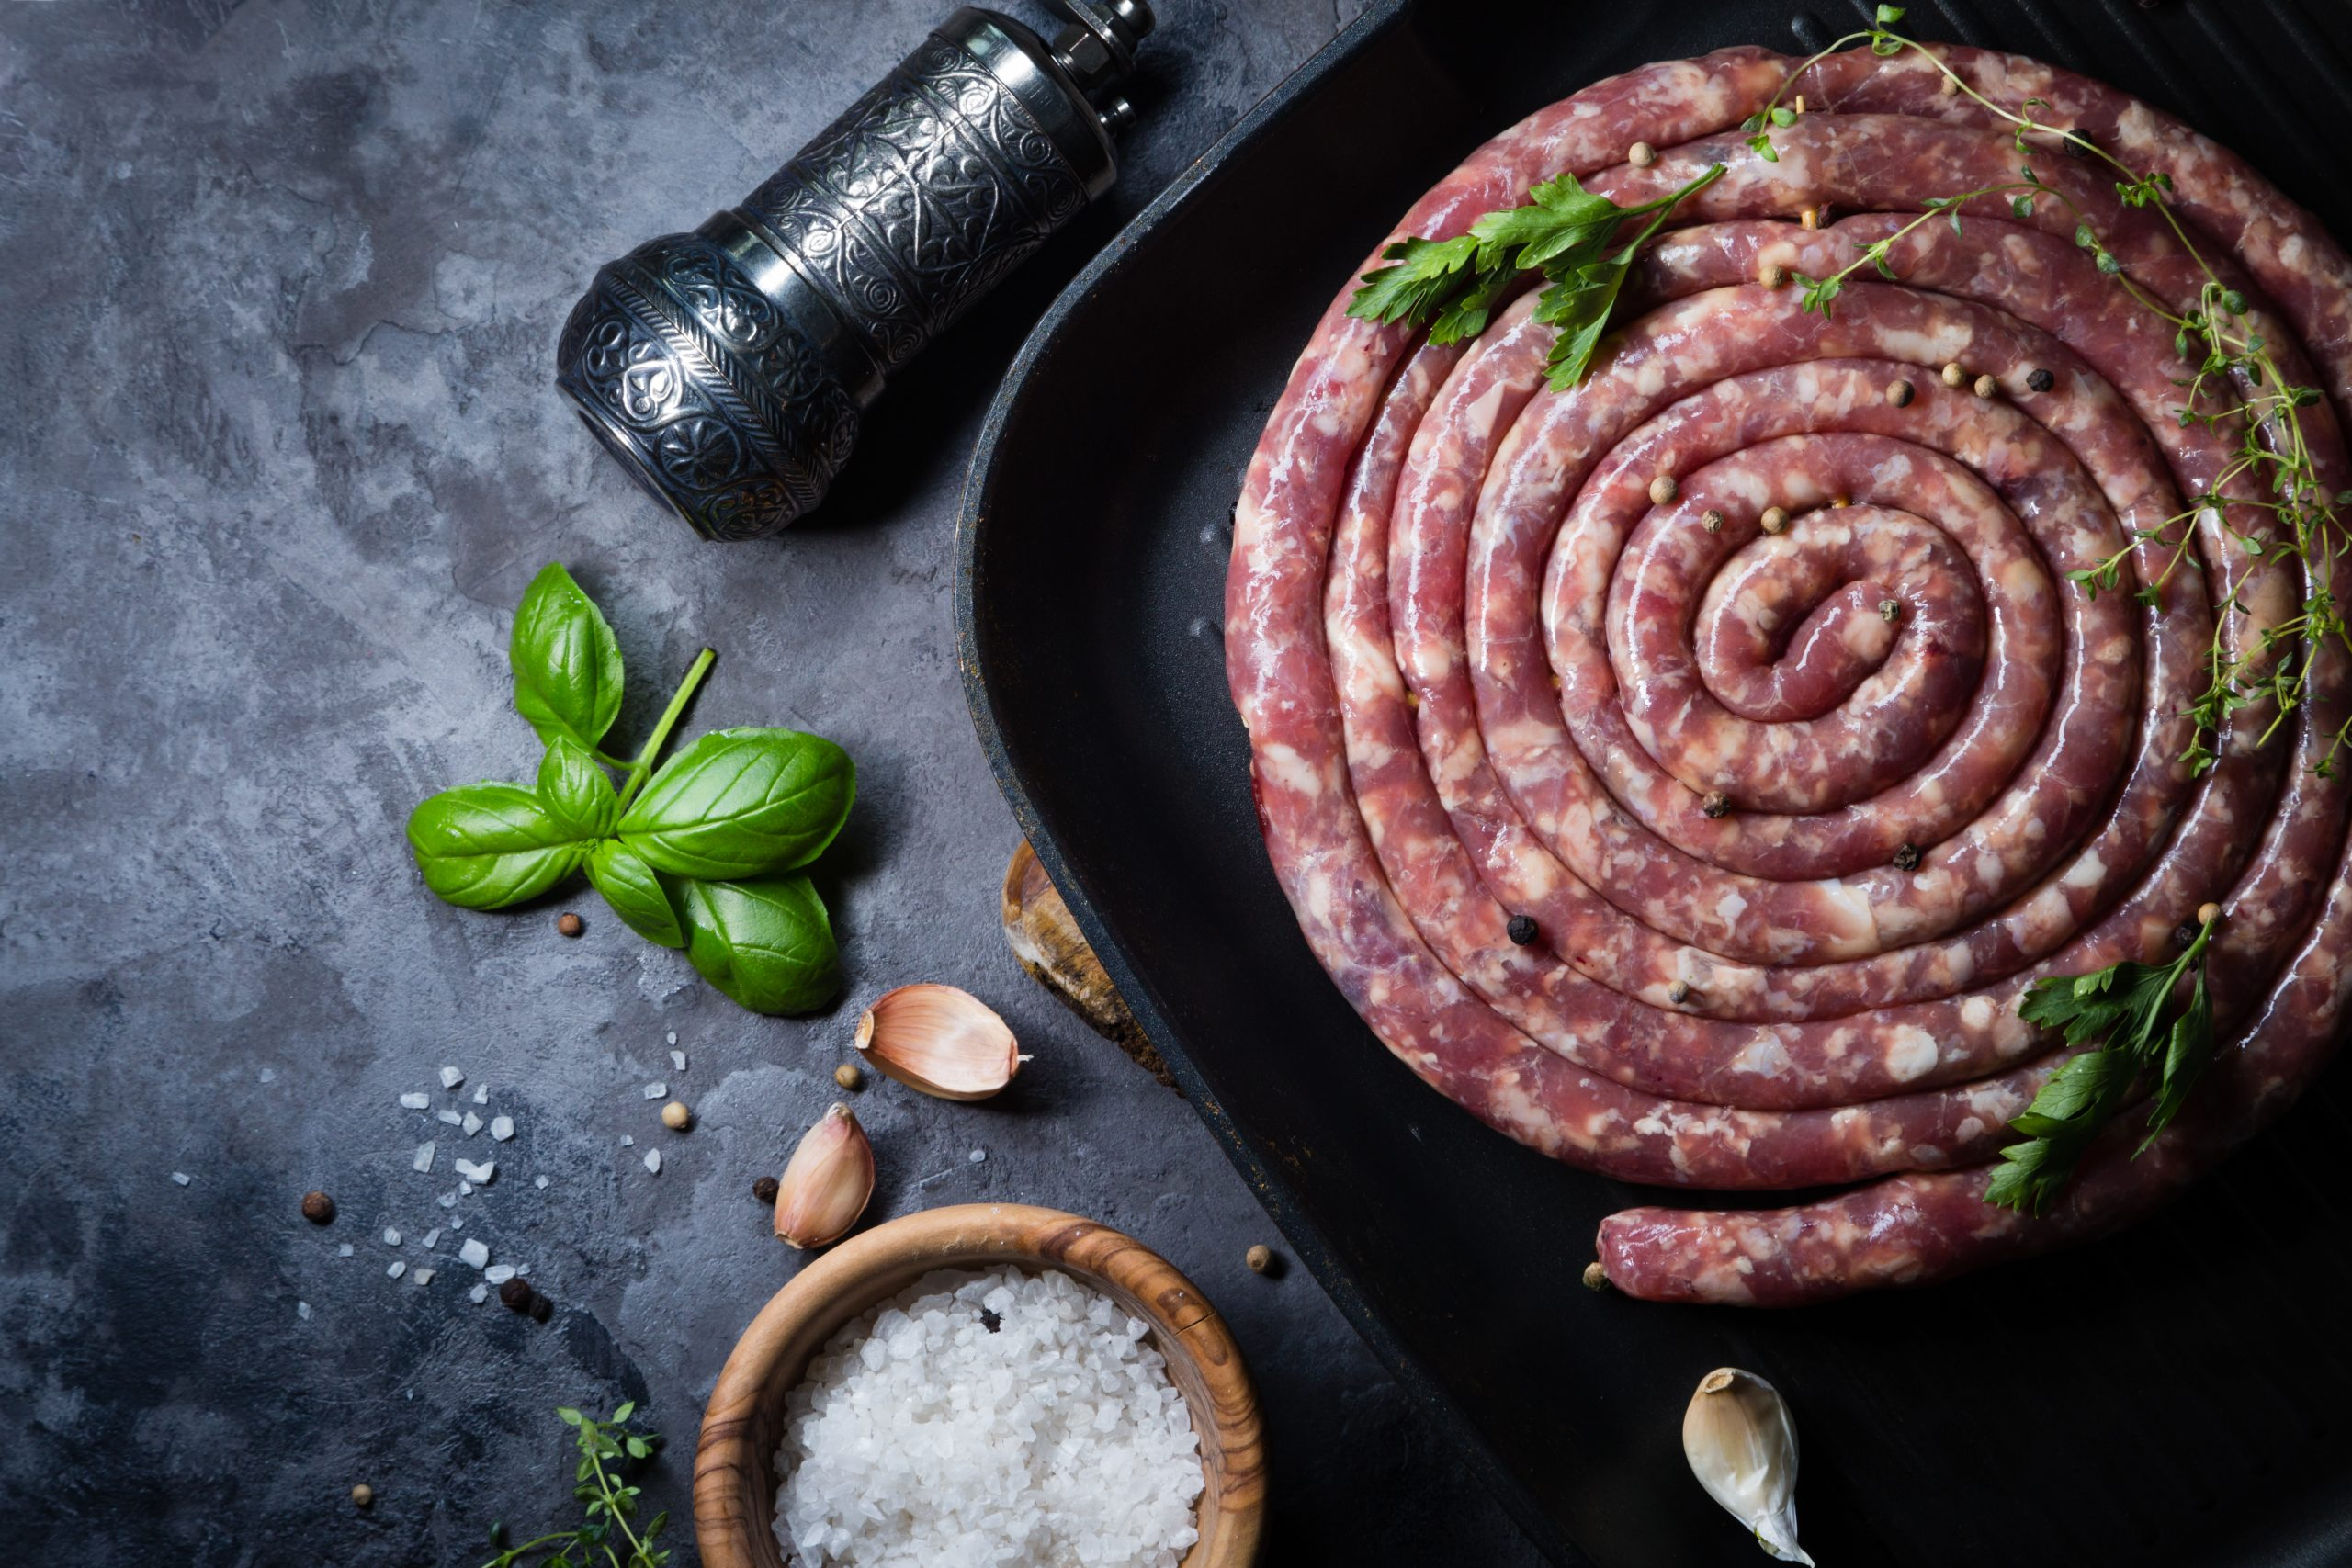 BOEREWORS CHEESE (THIN ALSO) – 1kg